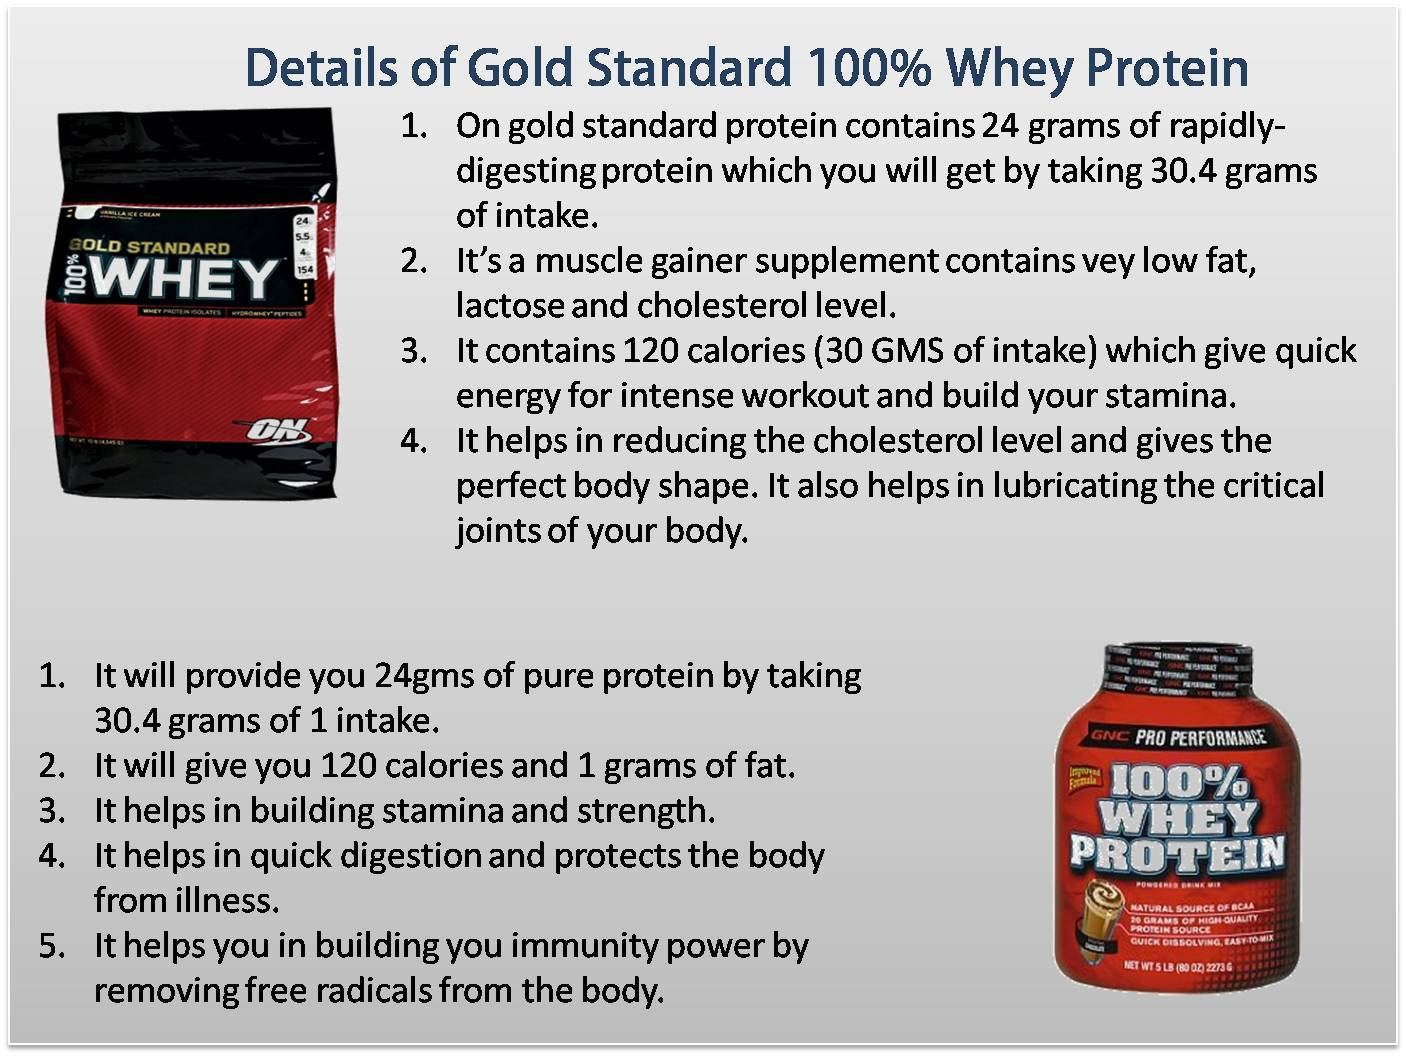 Gold standard whey protein side effects : 5 ingredient